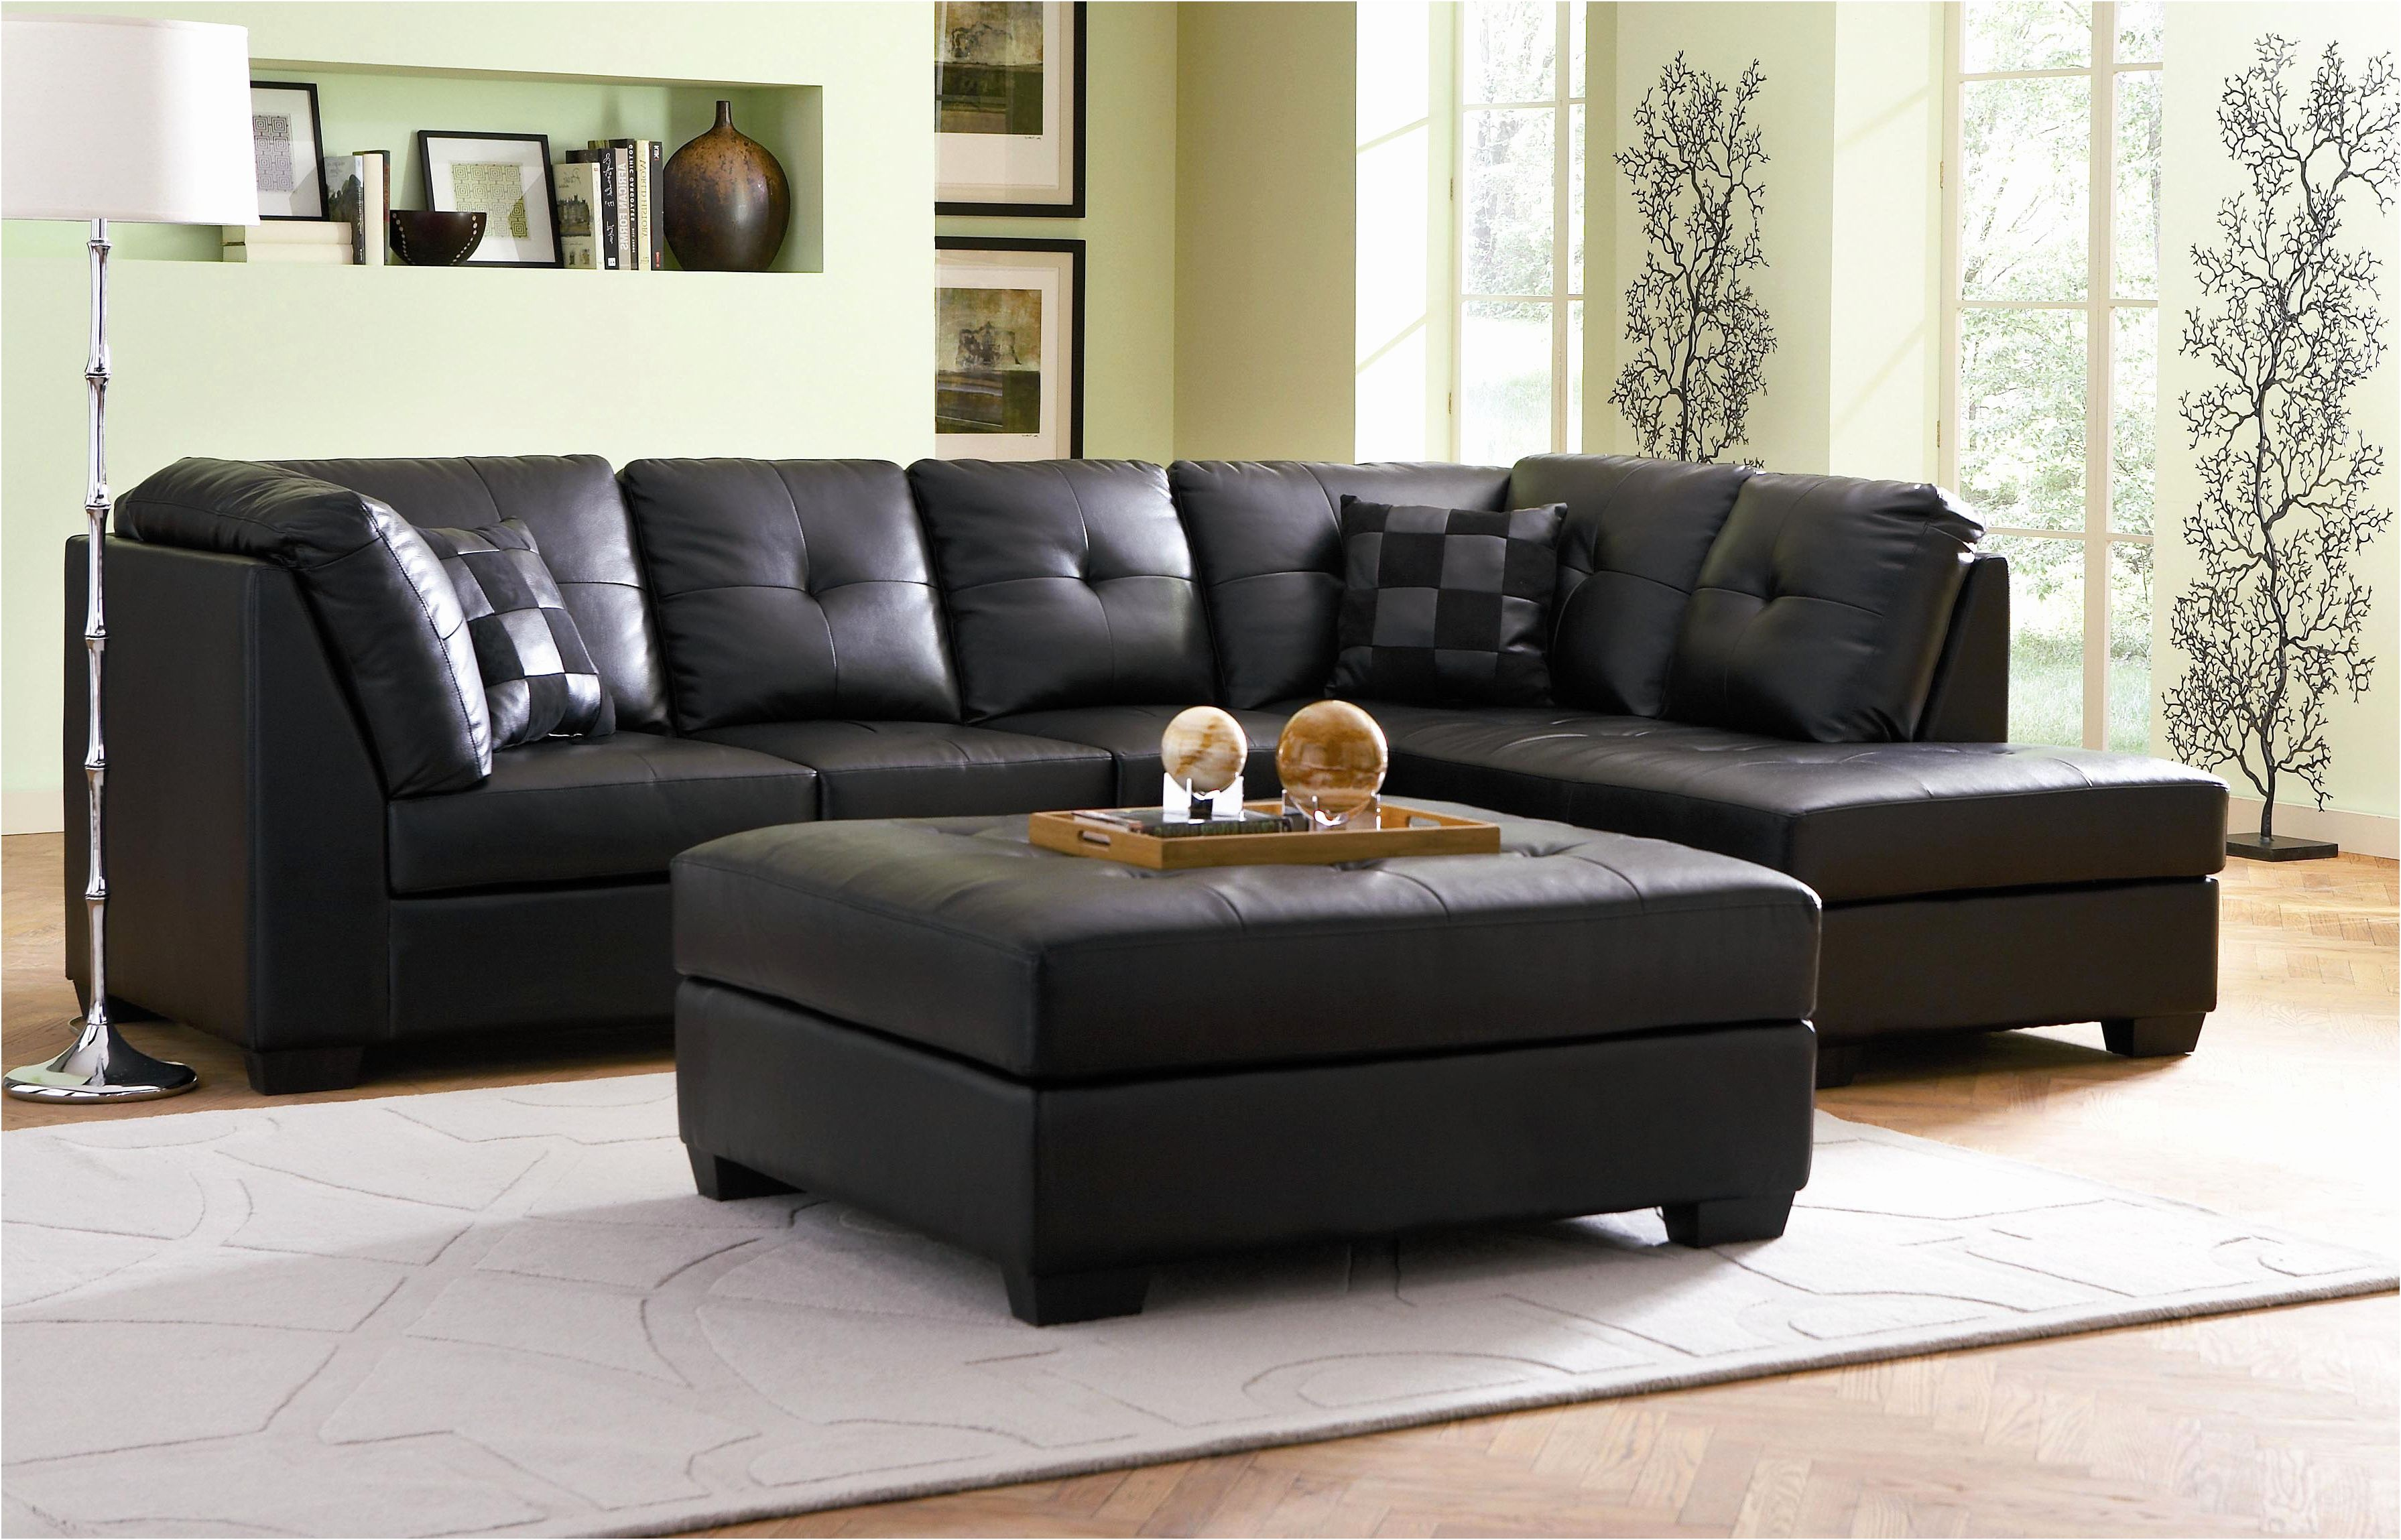 Pin by Sofacouchs on Sofas & Couches | Black leather sofa ...